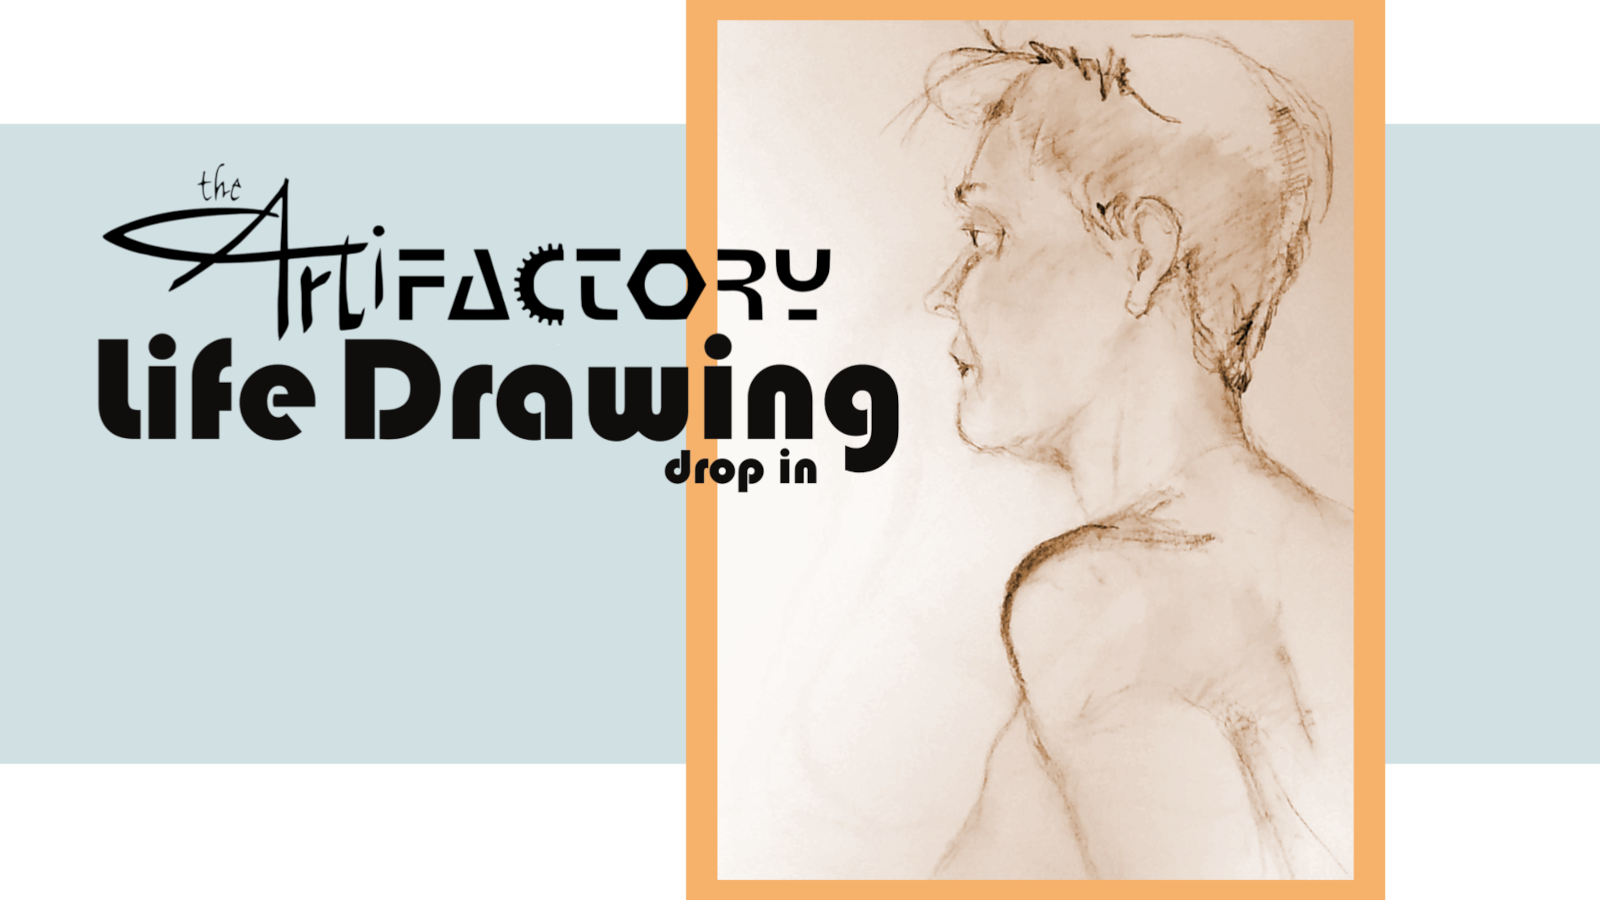 March Life Drawing